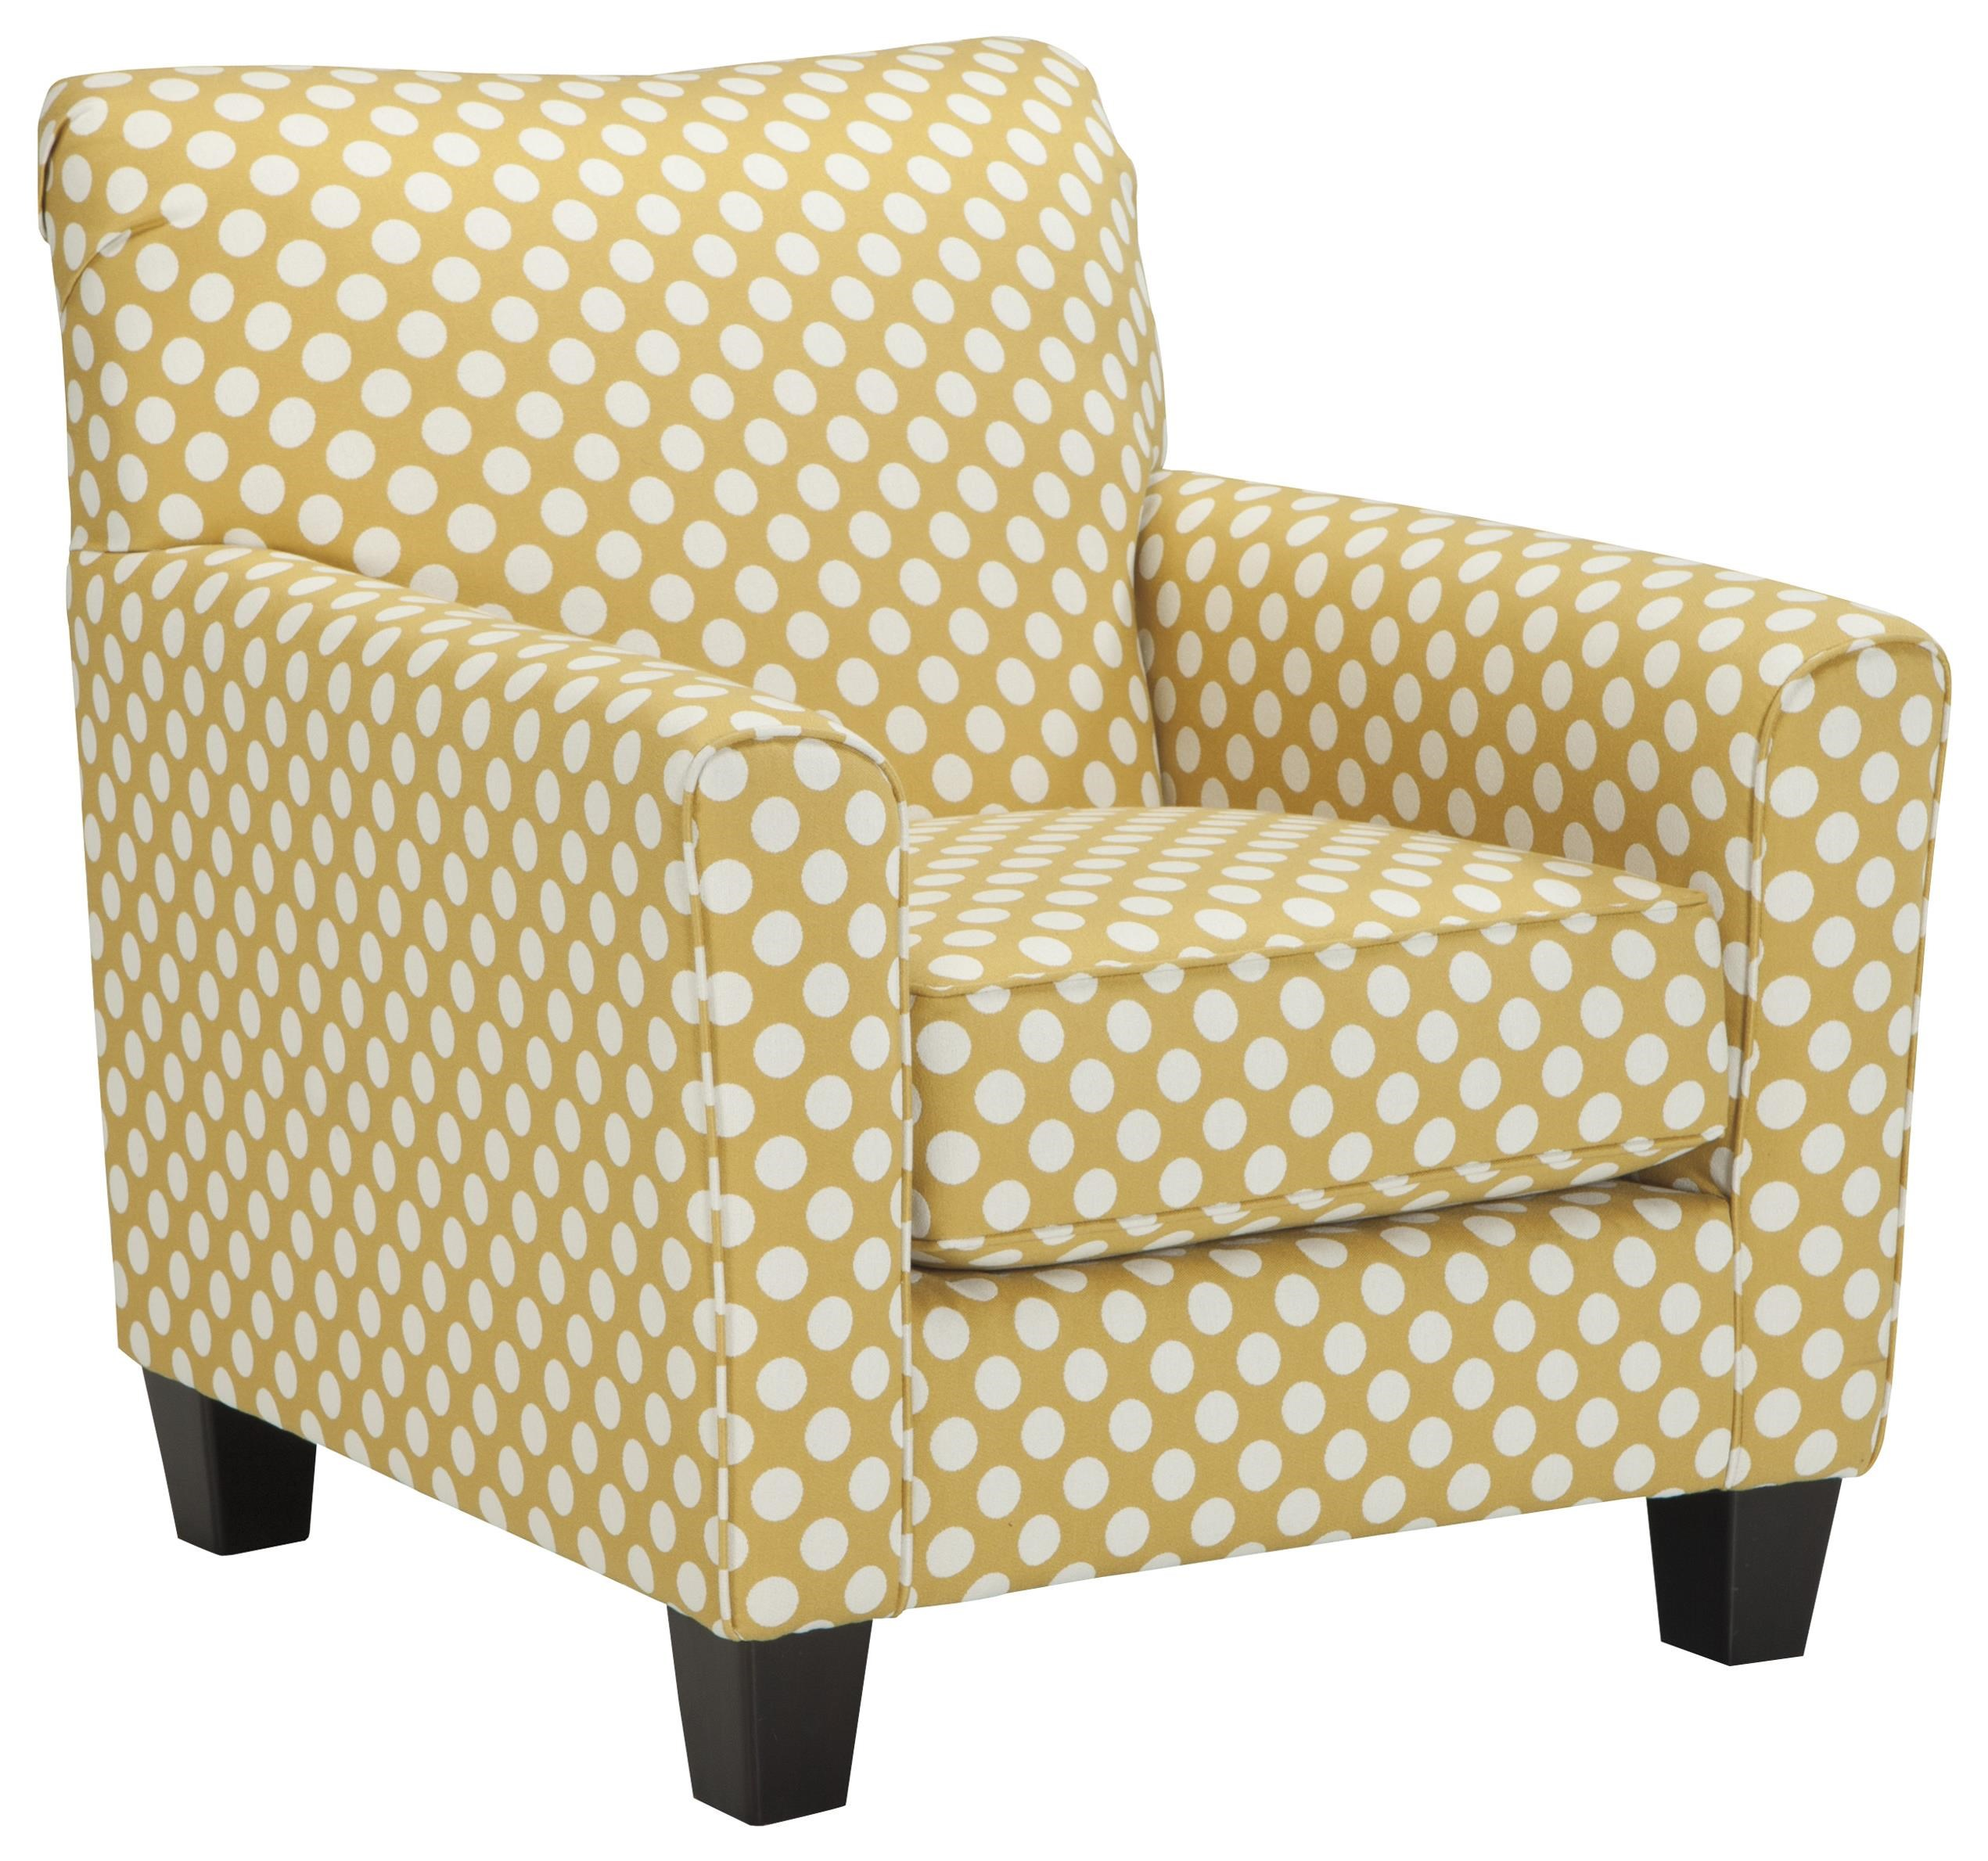 Benchcraft Brindon Accent Chair In Yellow Fabric With White Polka Dots